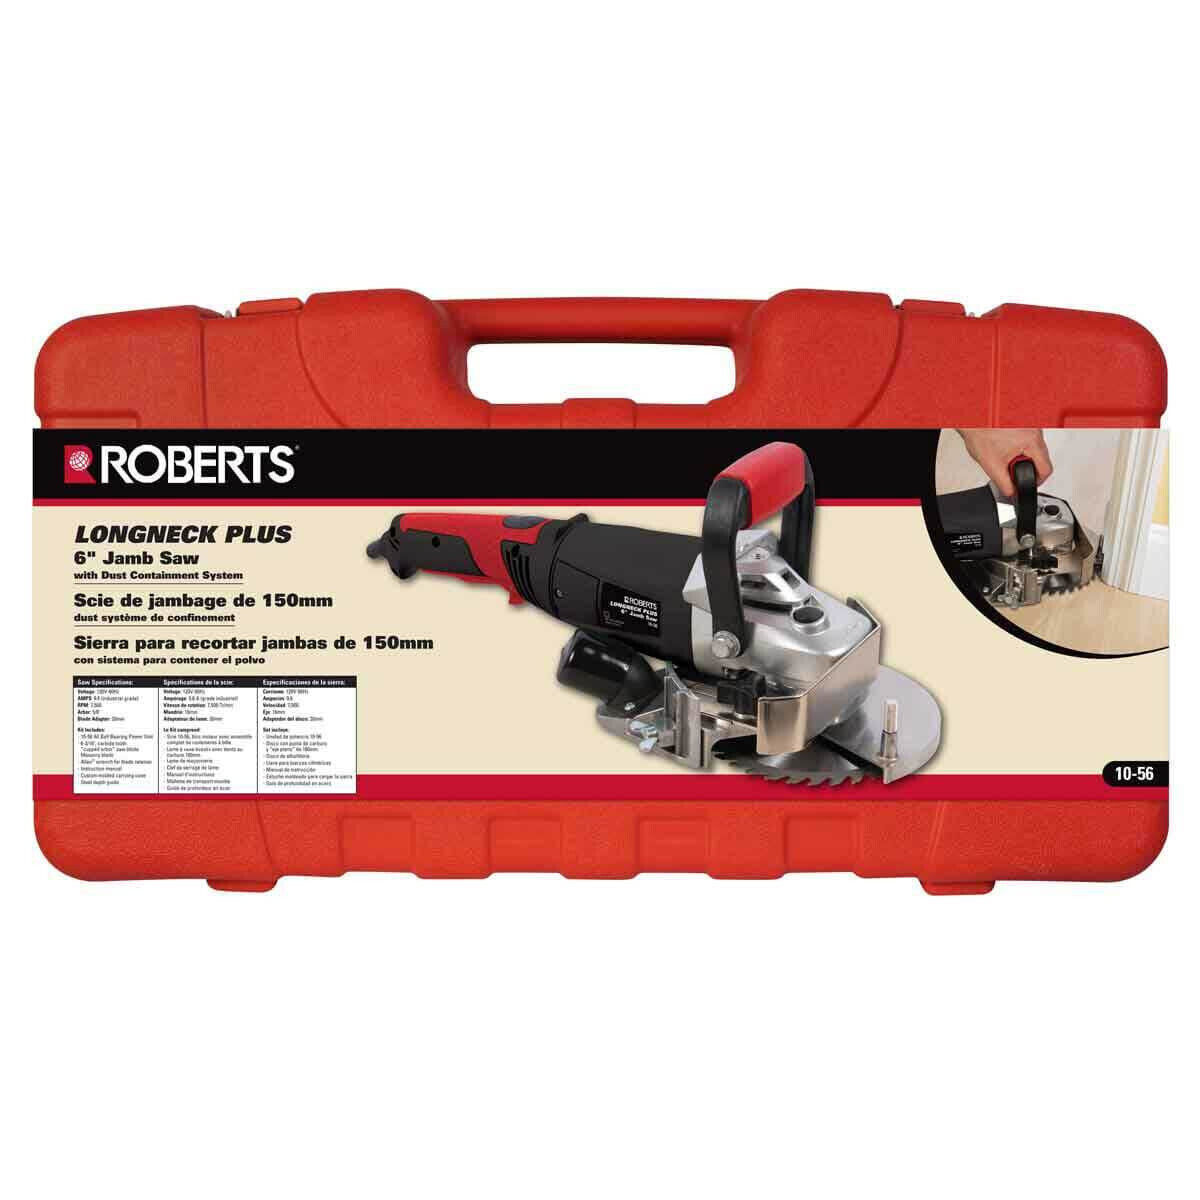 Roberts by QEP 10-56 Long Neck Plus Jamb Saw carrying case